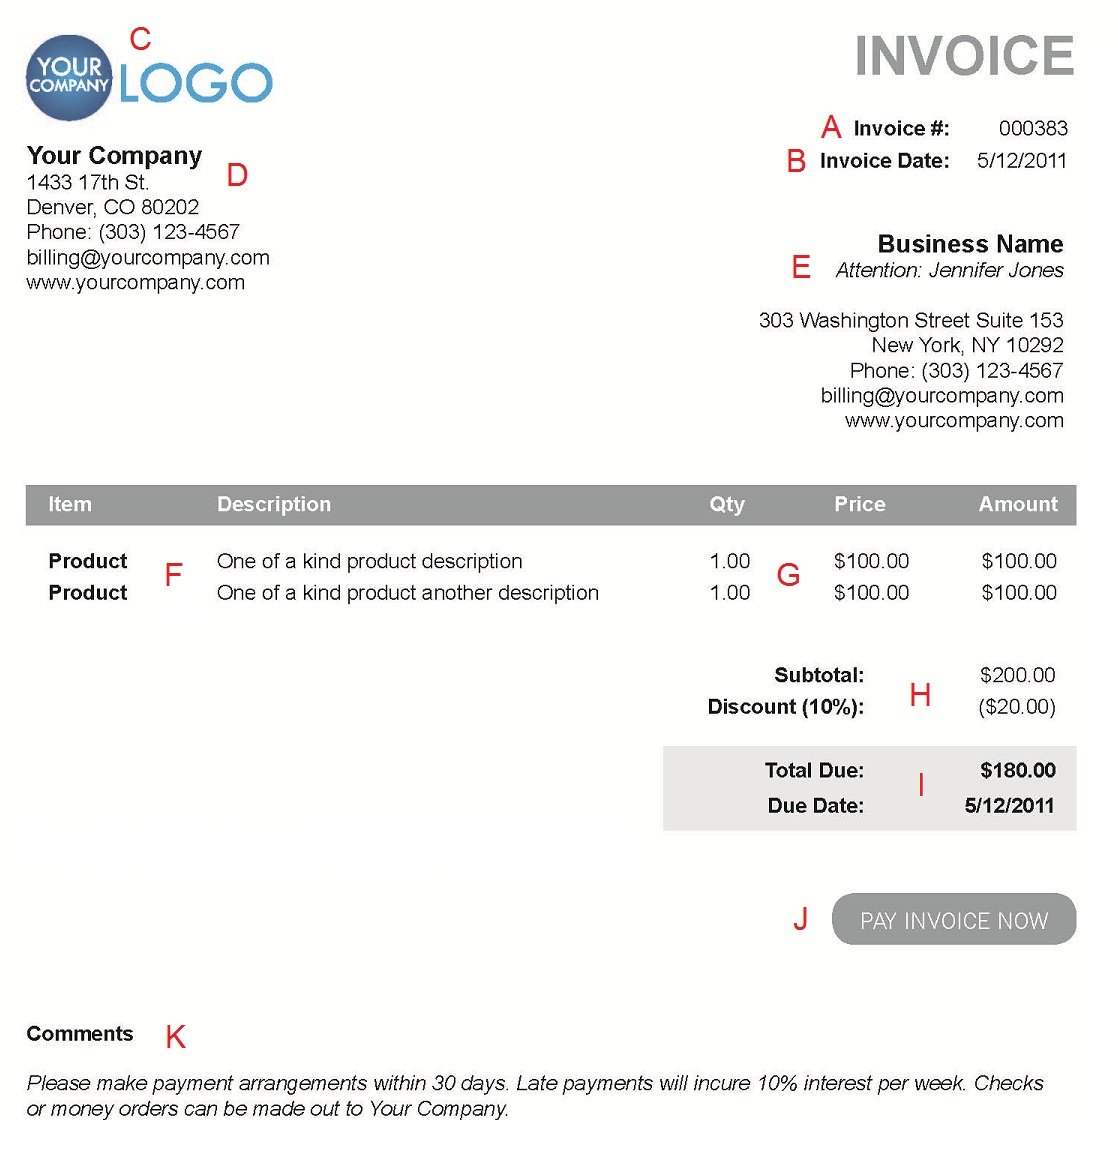 Pigbrotherus  Outstanding The  Different Sections Of An Electronic Payment Invoice With Extraordinary A  With Archaic Past Due Invoices Letter Also How To Make A Invoice Template In Addition Free Printable Blank Invoice Forms And Kia Sorento Invoice Price As Well As Php Invoice Additionally Mdx Invoice From Paysimplecom With Pigbrotherus  Extraordinary The  Different Sections Of An Electronic Payment Invoice With Archaic A  And Outstanding Past Due Invoices Letter Also How To Make A Invoice Template In Addition Free Printable Blank Invoice Forms From Paysimplecom